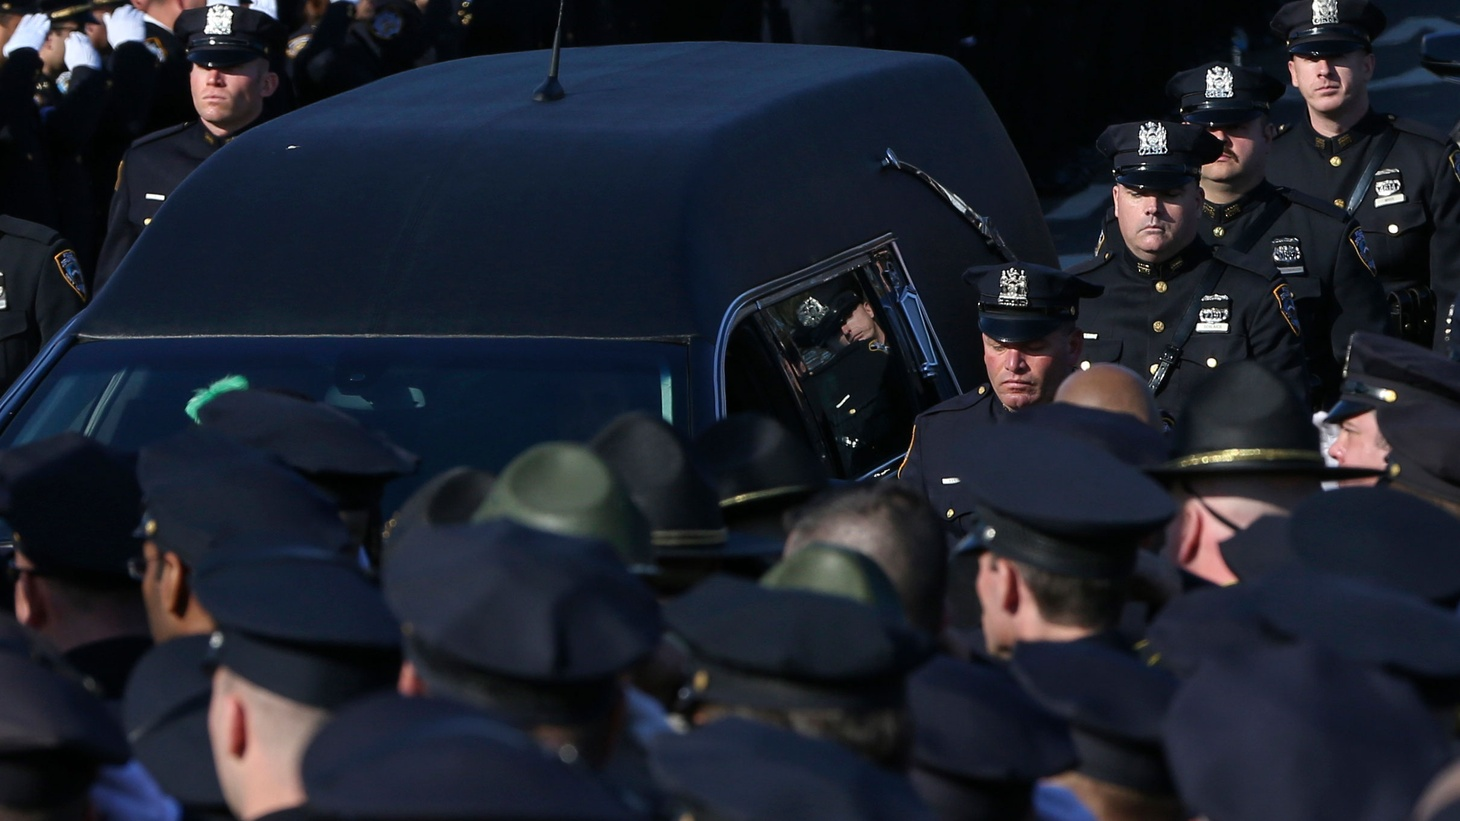 After months of protest over high profile deaths of African Americans at the hands of police, law enforcement is pushing back with pro-police rallies across the country and a social media campaign -- BlueLivesMatter. We look at the blue backlash and where it will lead the national debate over policing and race.